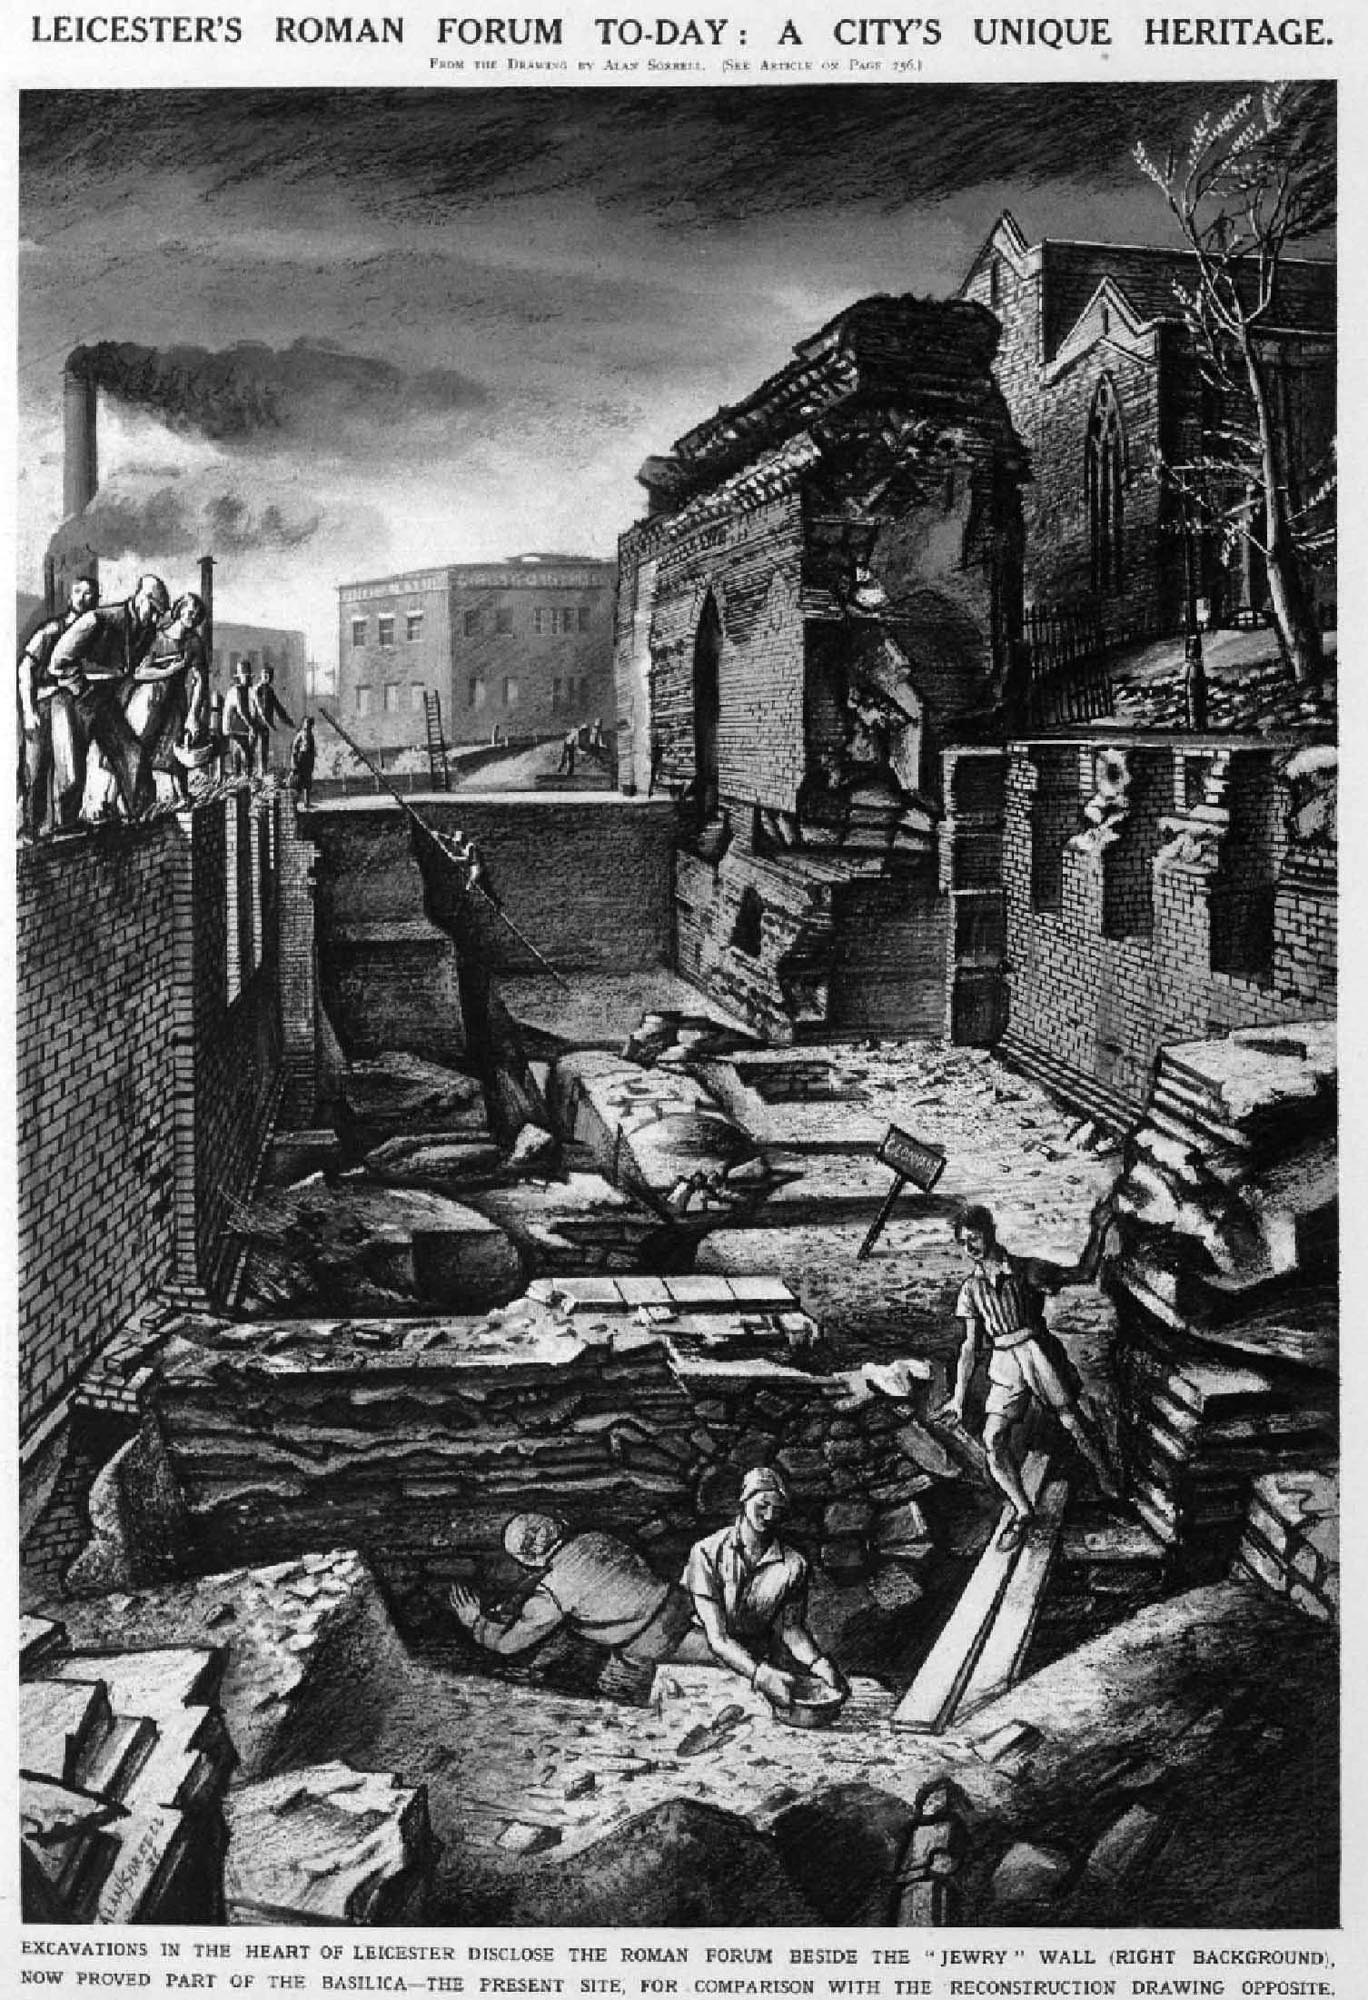 Excavations in the heart of Leicester… beside the 'Jewry' Wall - A. Sorrell, London Illustrated News 1930s